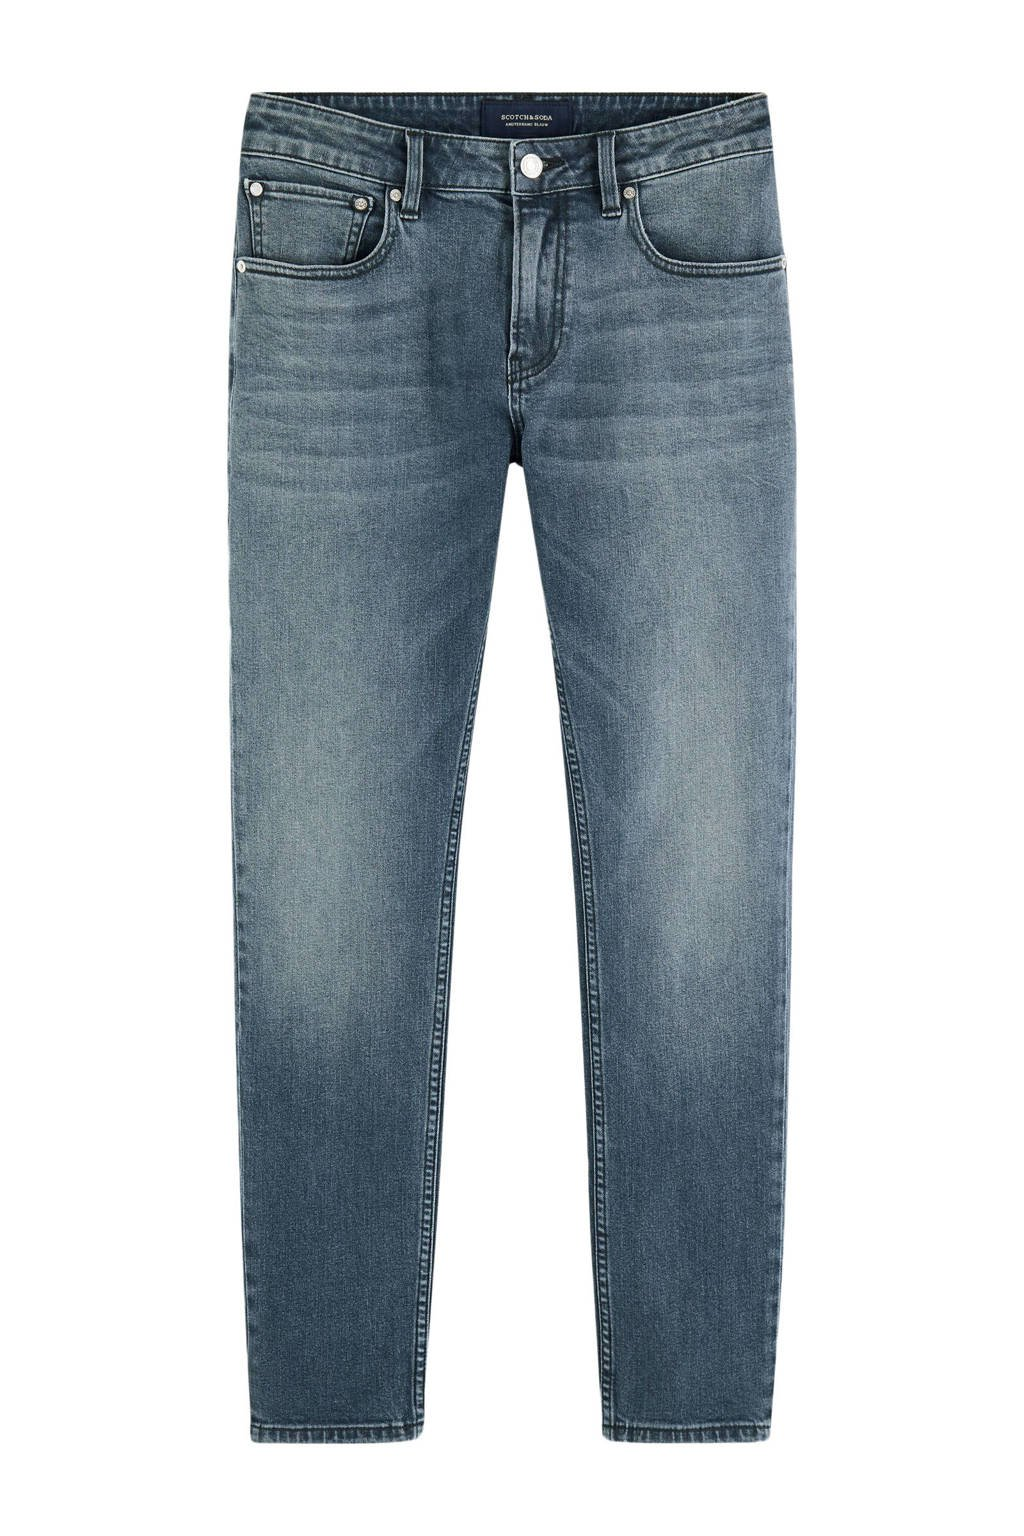 Scotch & Soda Amsterdams Blauw skinny jeans Skim moonlight, Moonlight